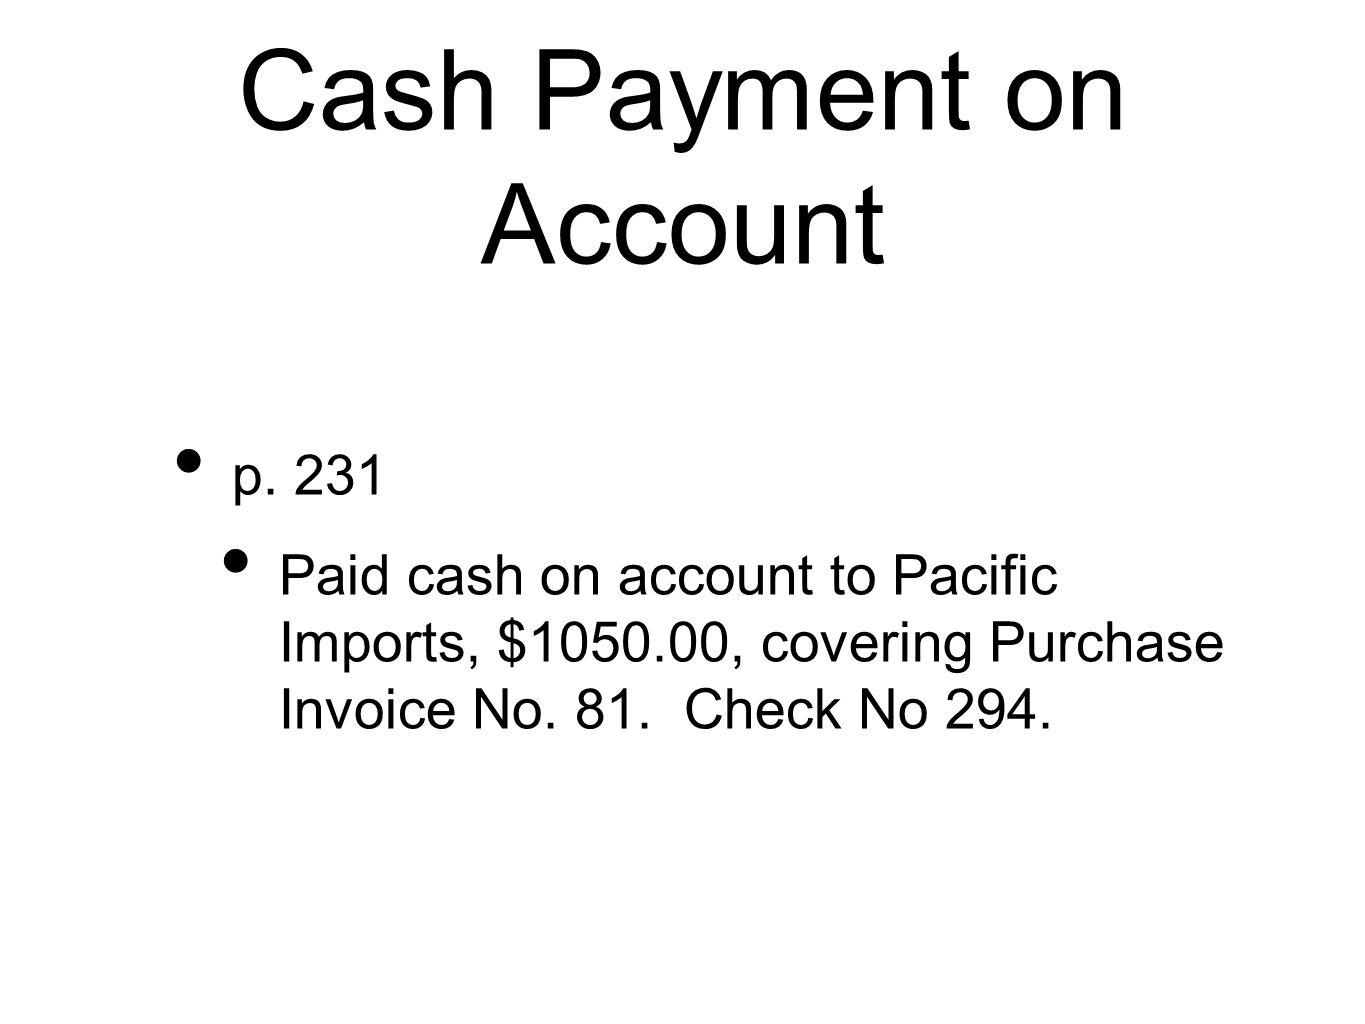 Cash Payment on Account